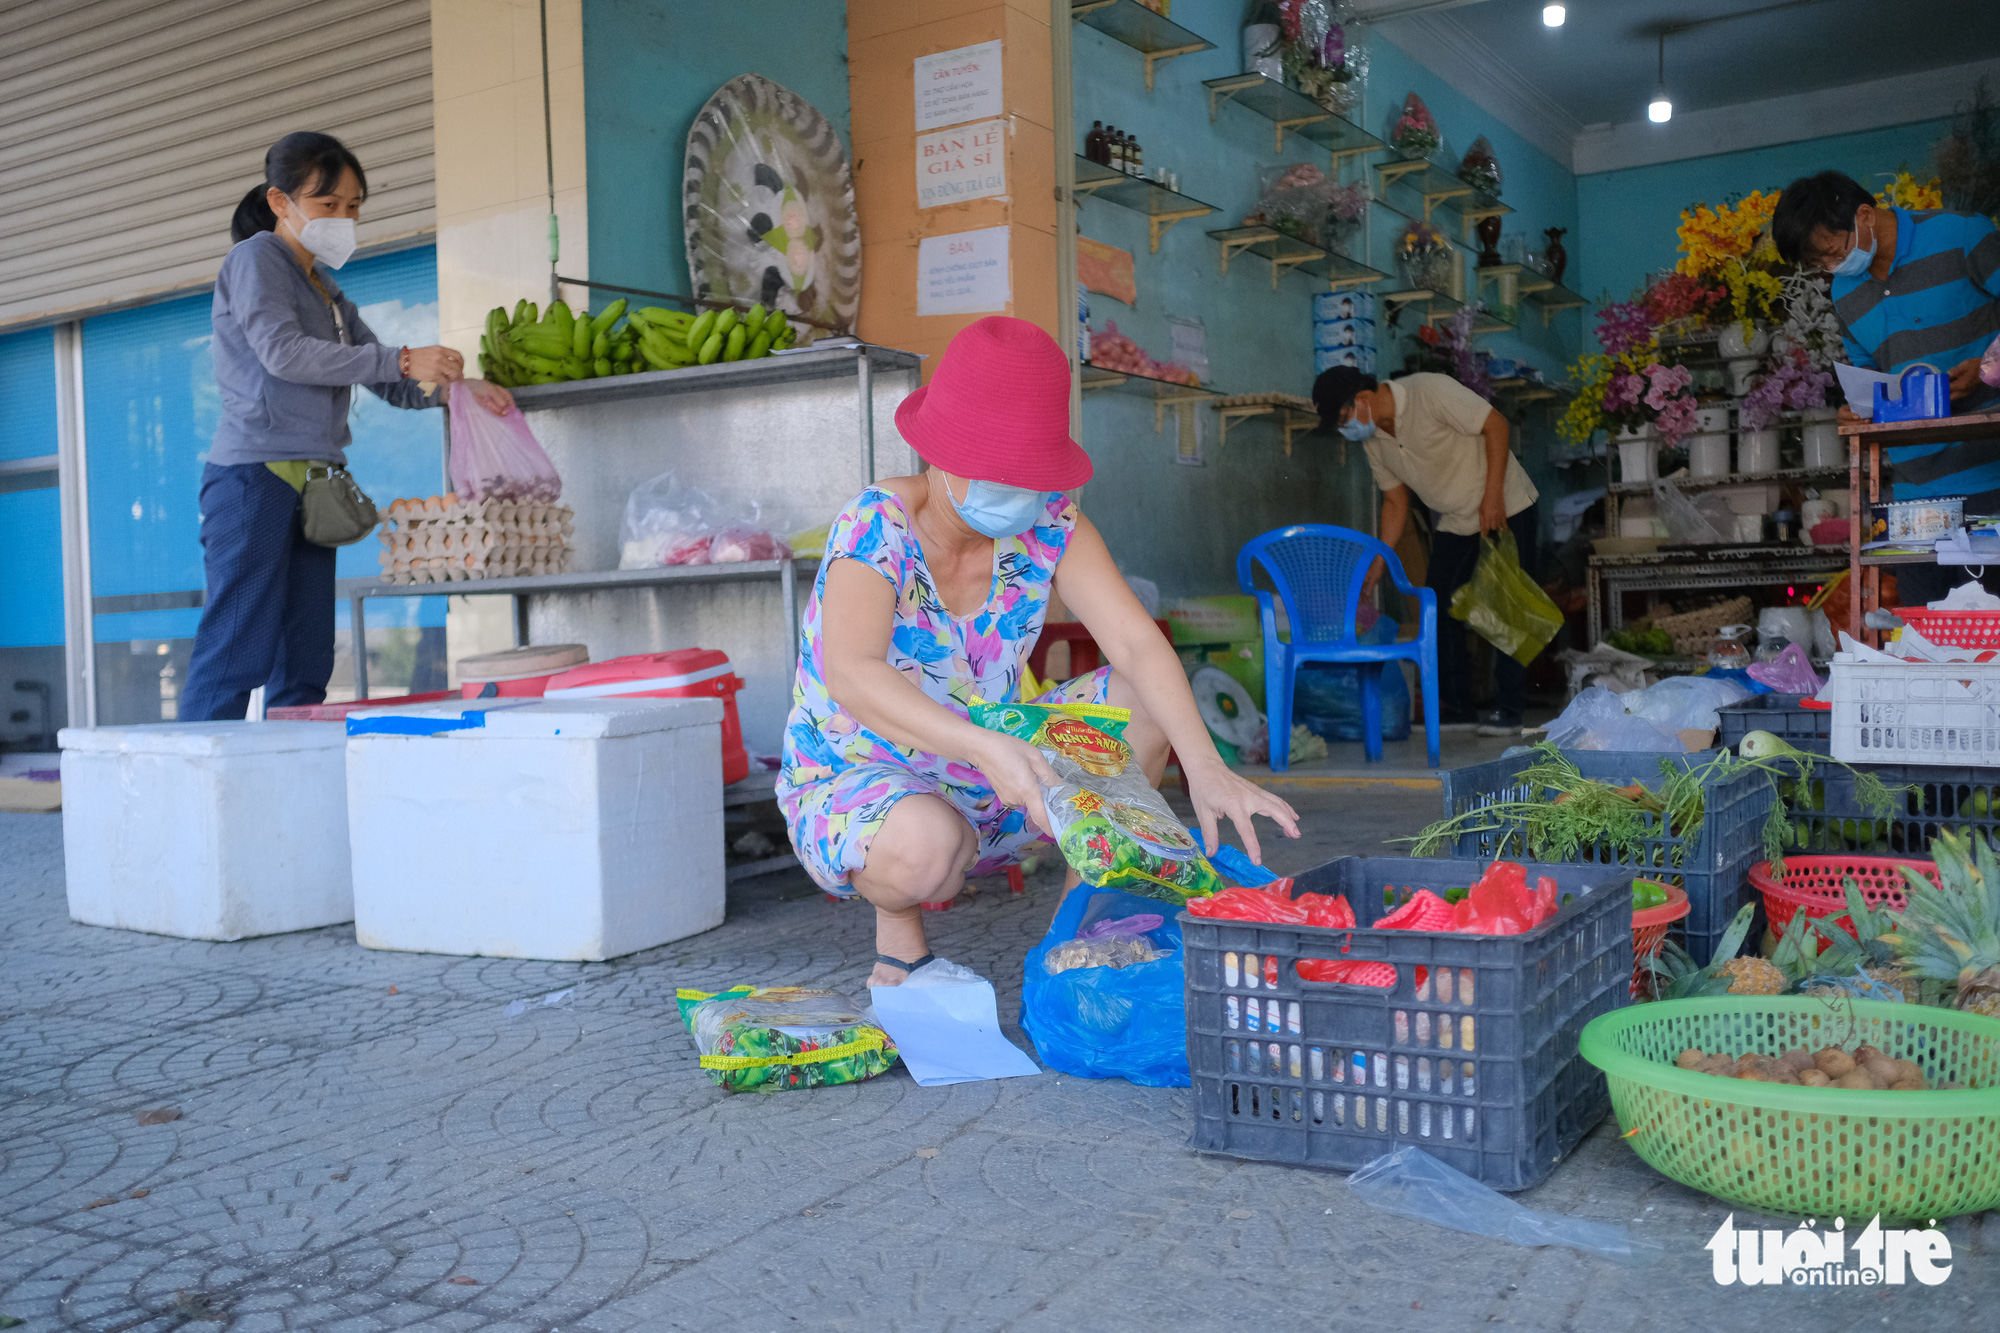 Slow travel pass issuance cuts footfall as Da Nang loosens COVID-19 restrictions